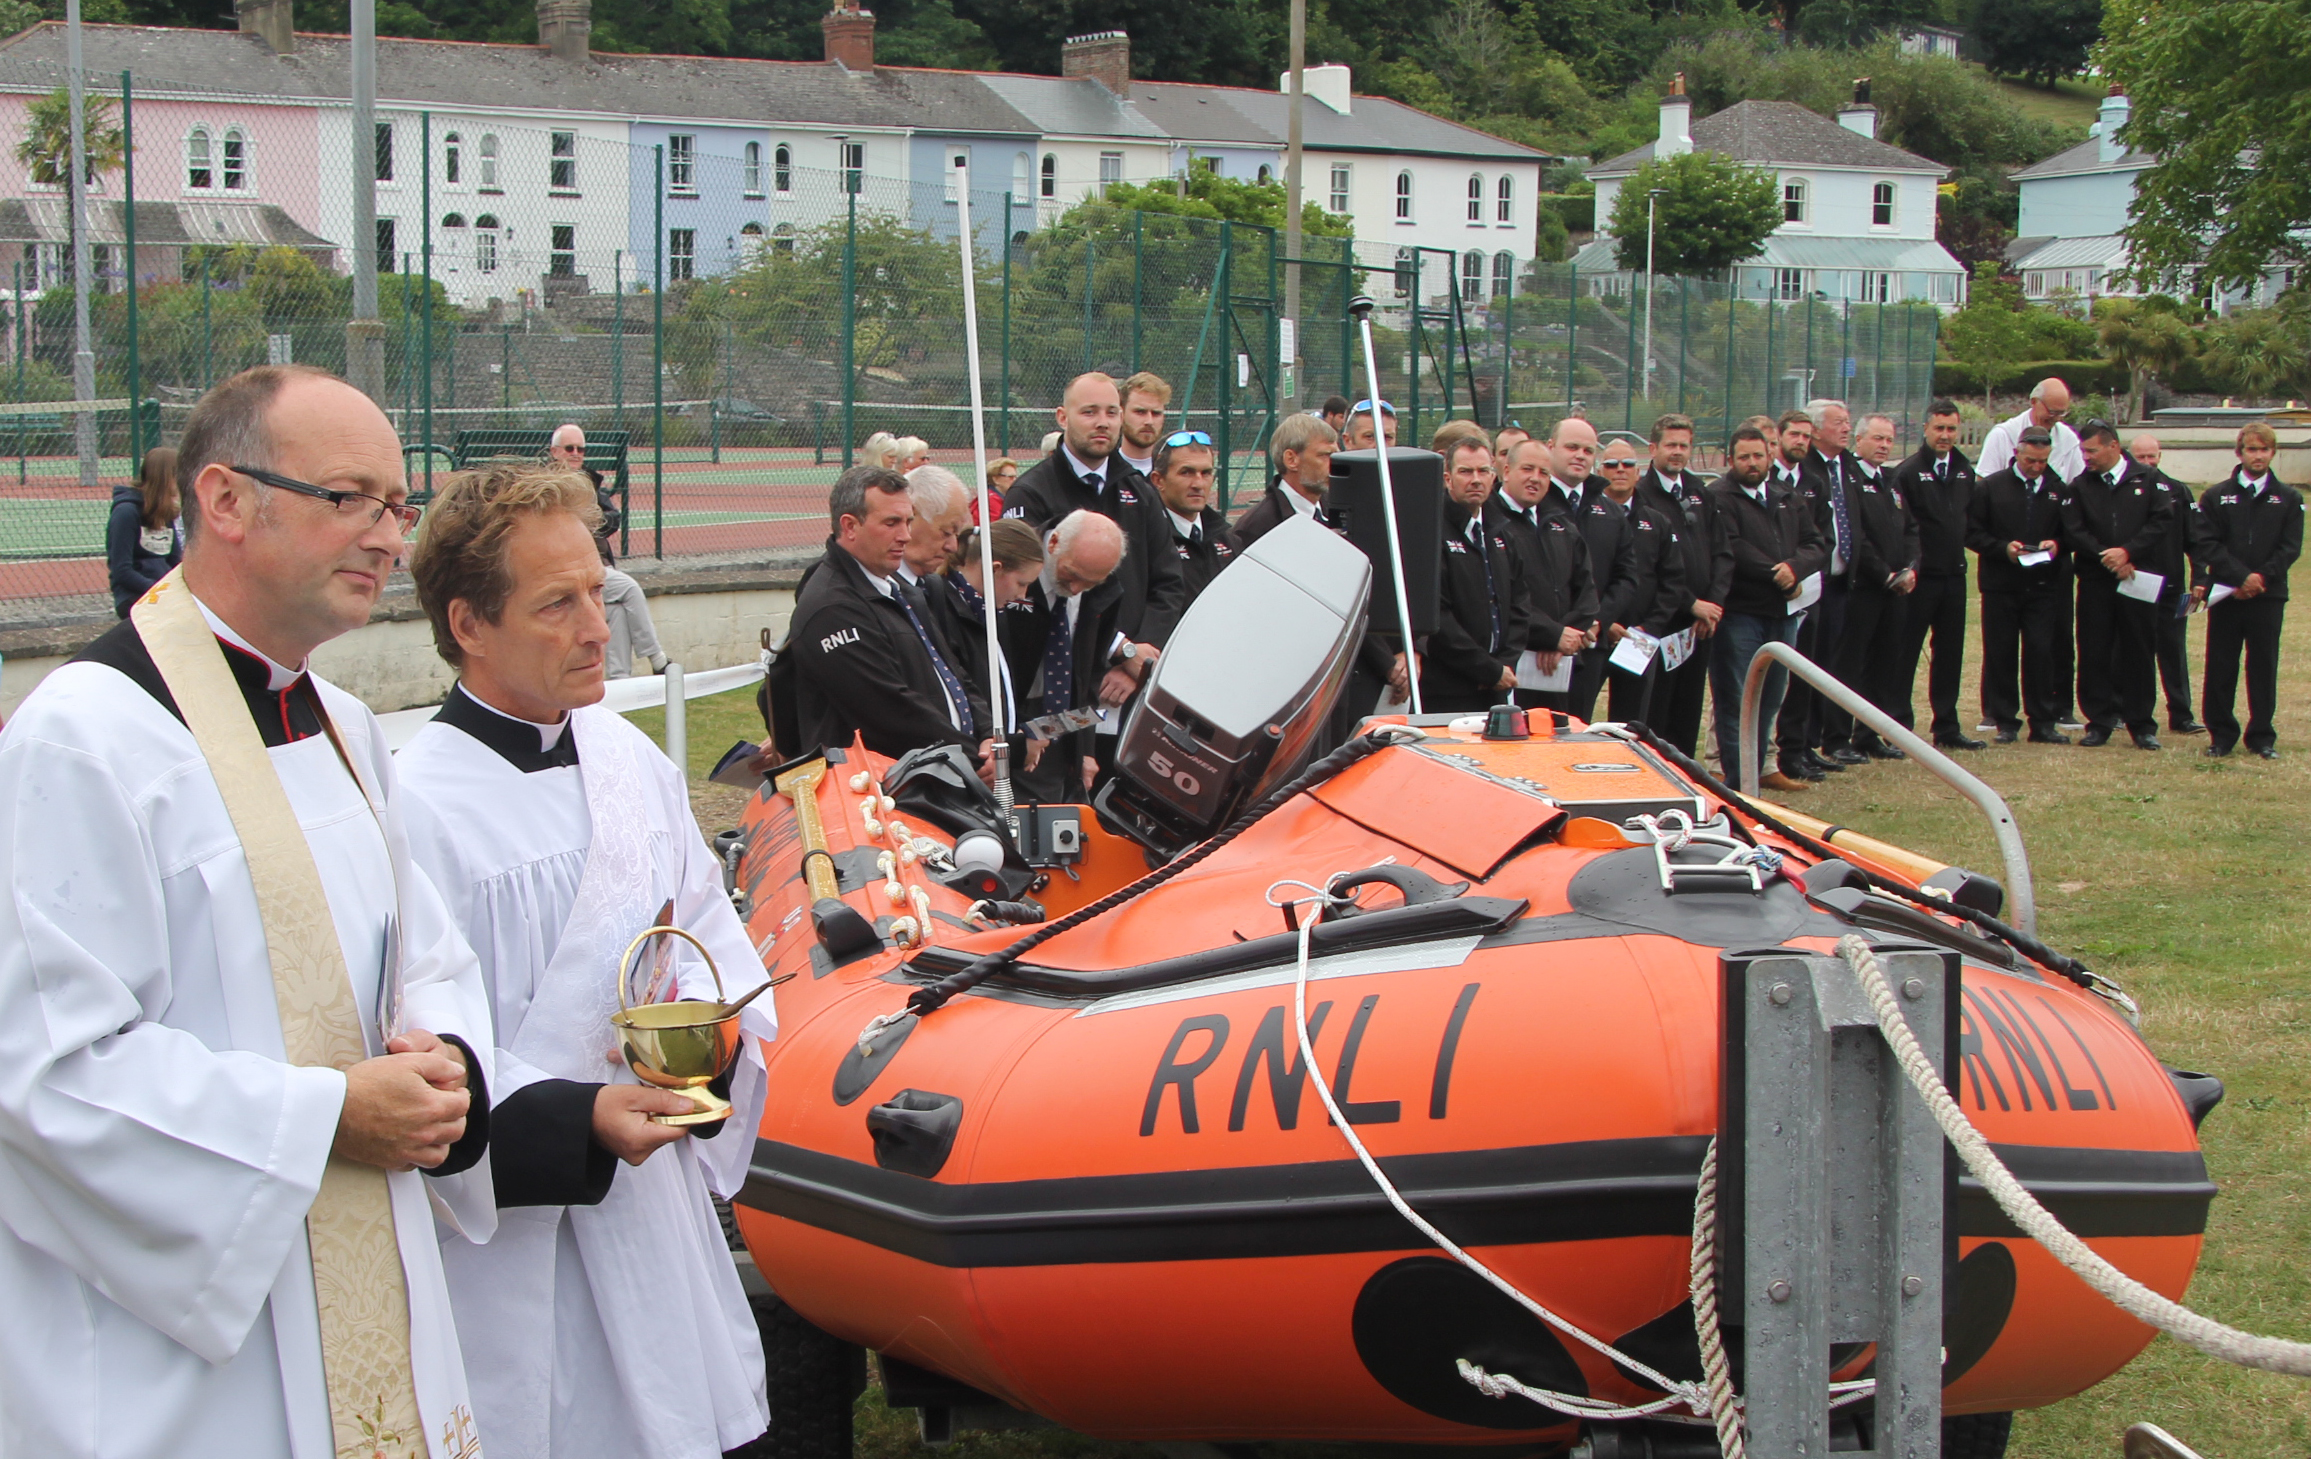 Fathers Will Hazelwood and Andrew Langley with the lifeboat volunteer crew at the blessing of the new lifeboat.